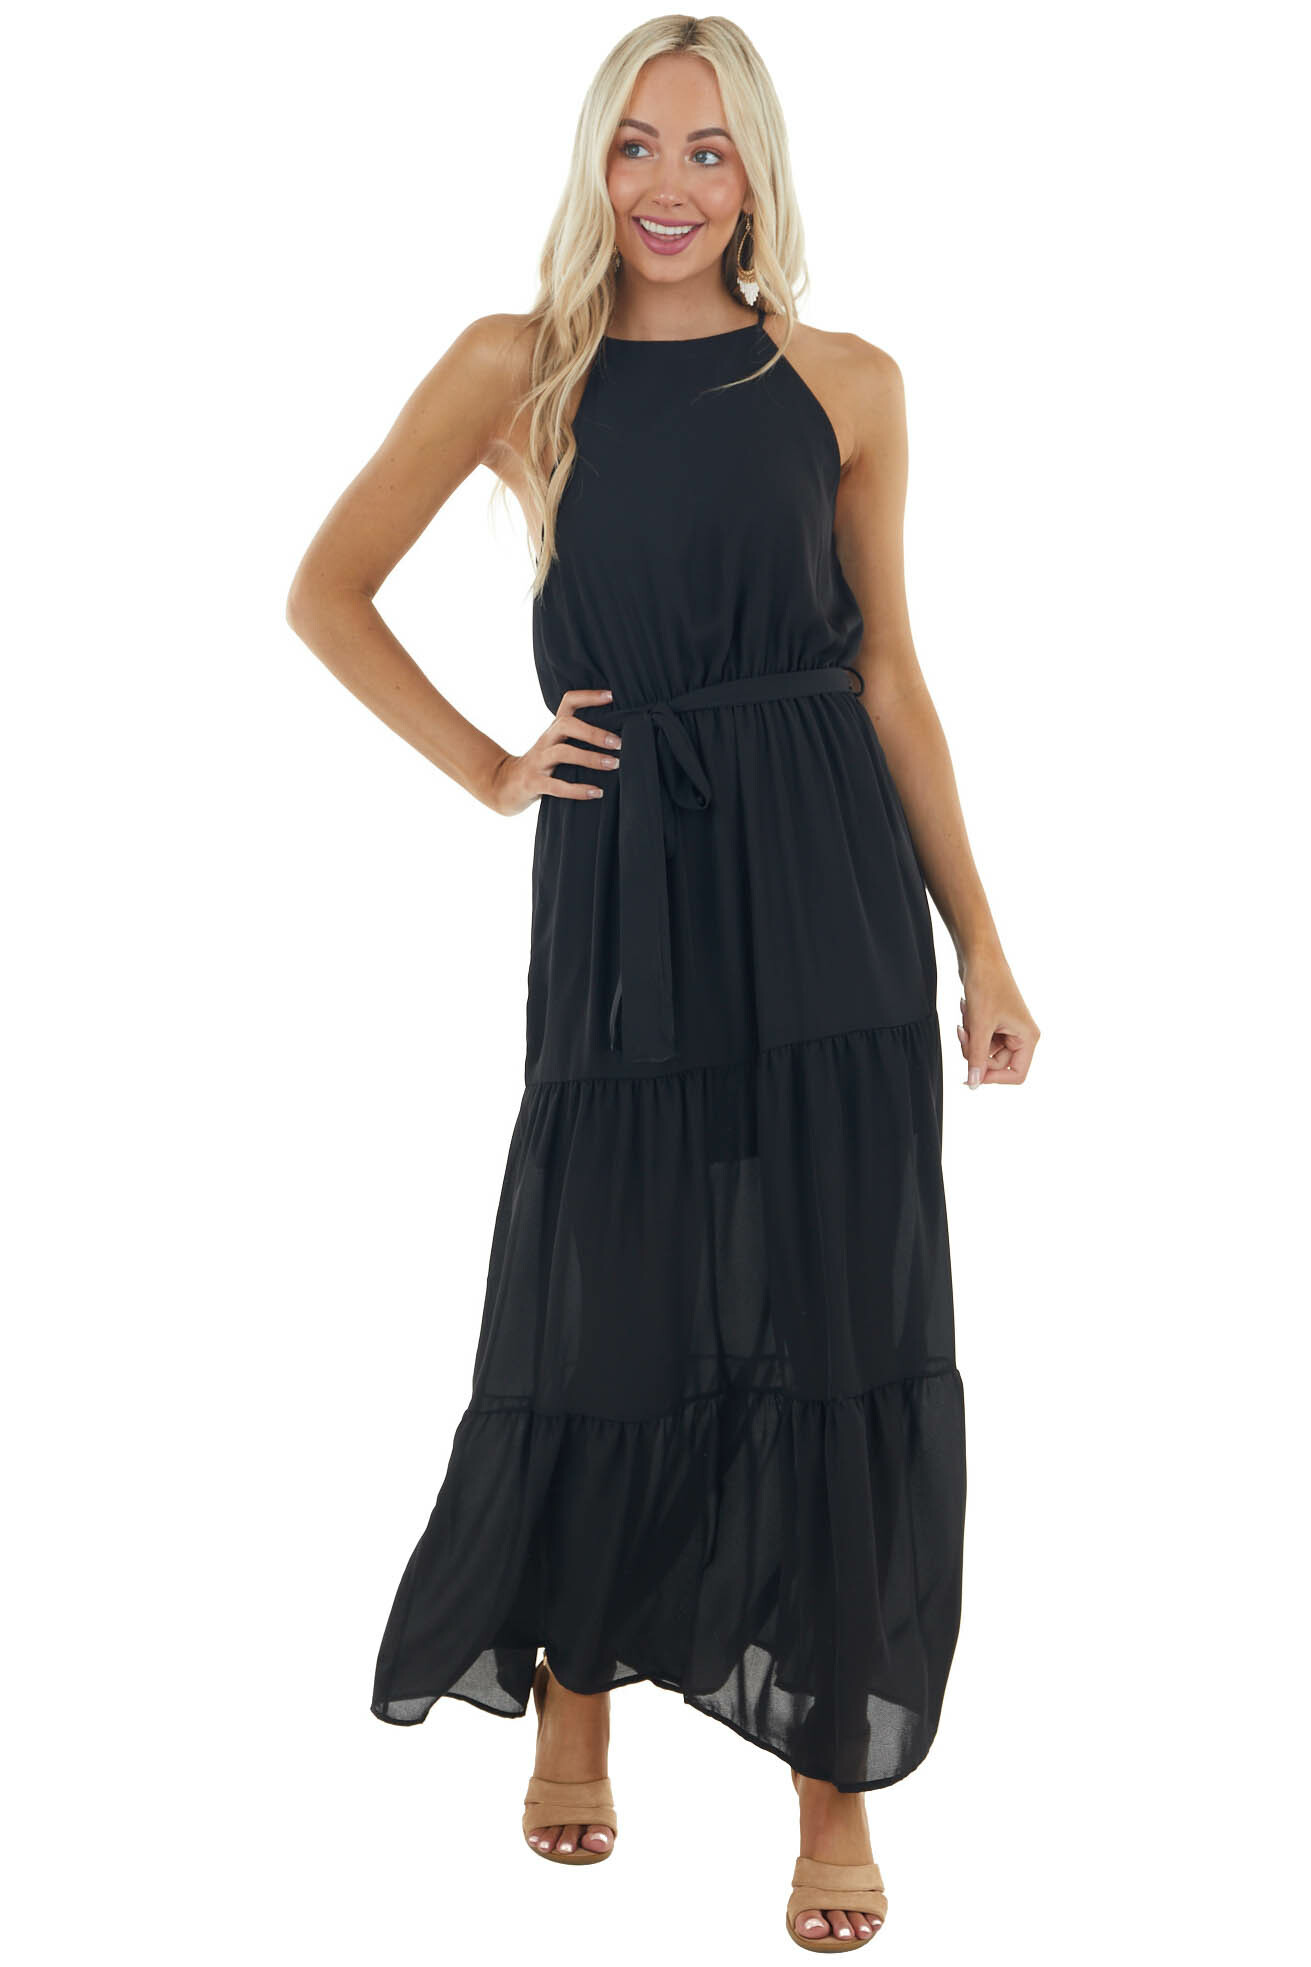 Black Halter Neck Tiered Woven Maxi Dress with Keyhole Back